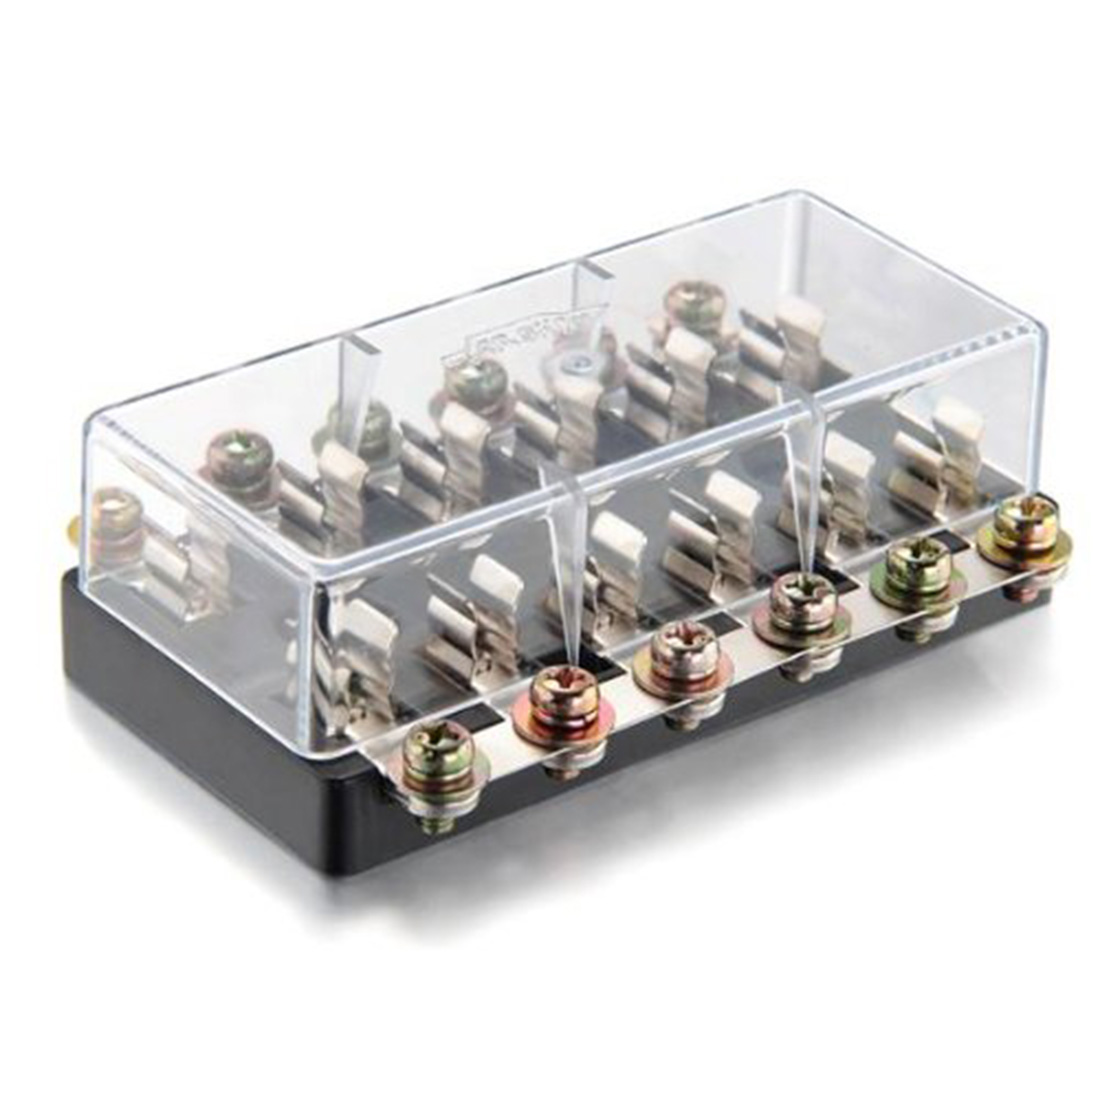 medium resolution of description 6 way fuse box suitable for agc and jso fuses 1 in marsnaska brand new universal 12v